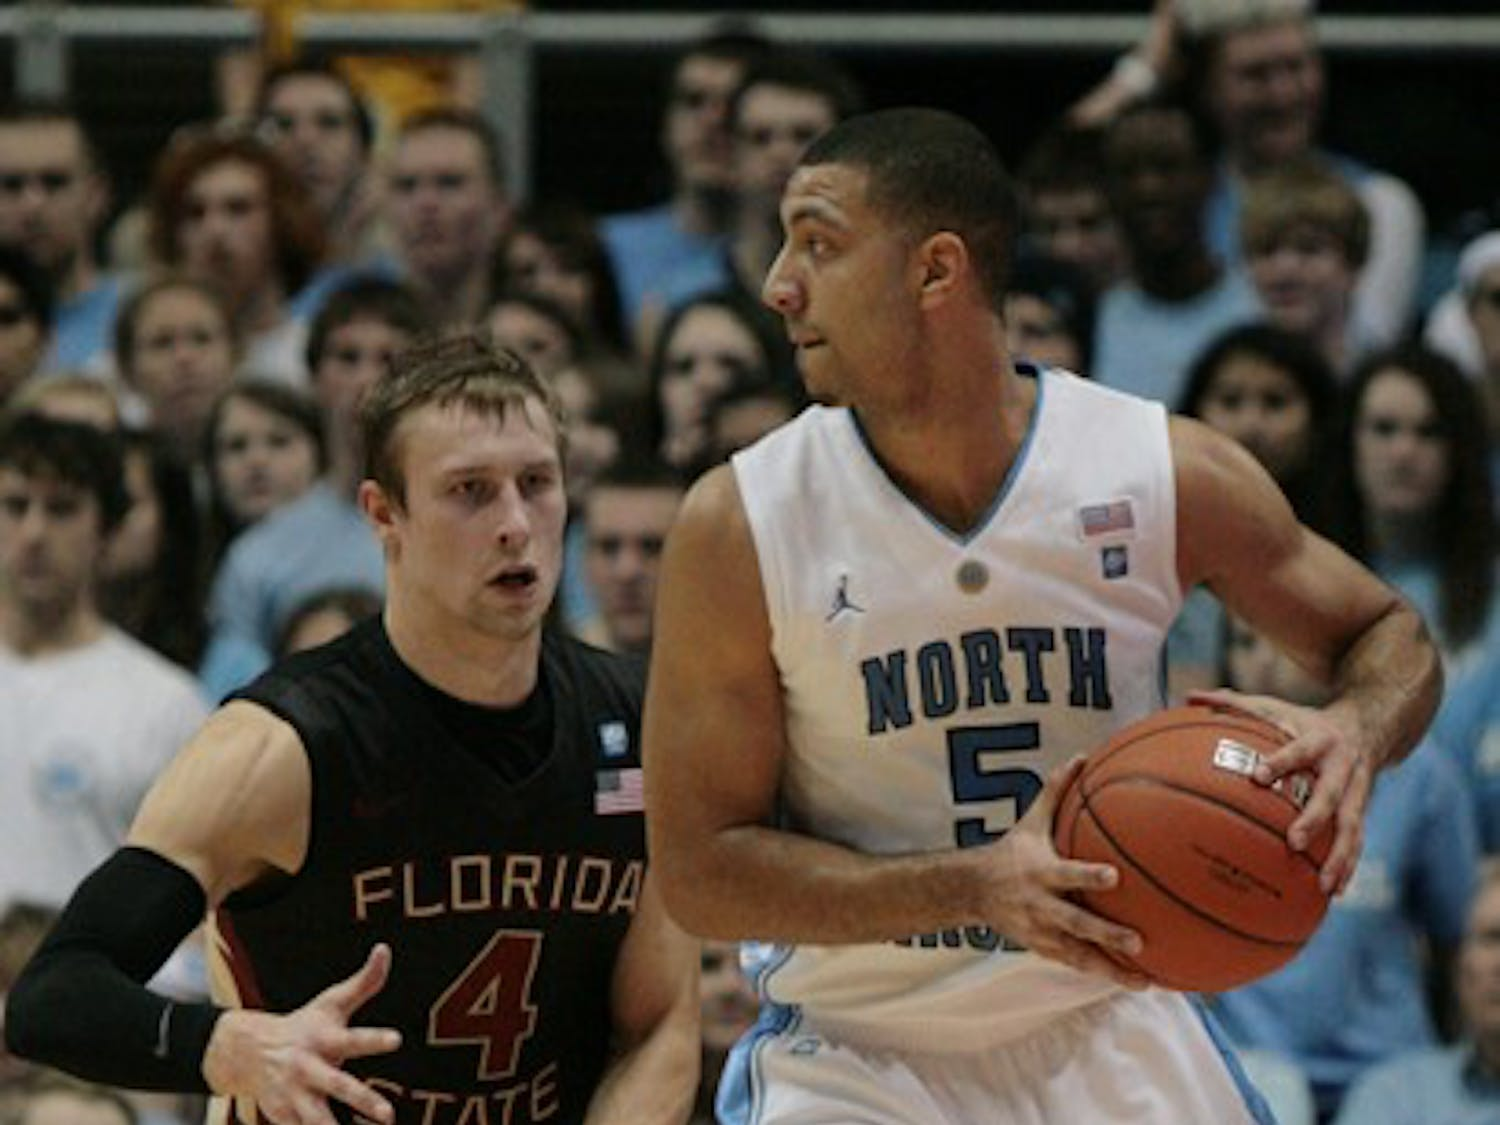 Kendall Marshall scored nine points and dished out a UNC freshman record 16 assists against Florida State. He played more minutes on Sunday following Larry Drew II's departure.